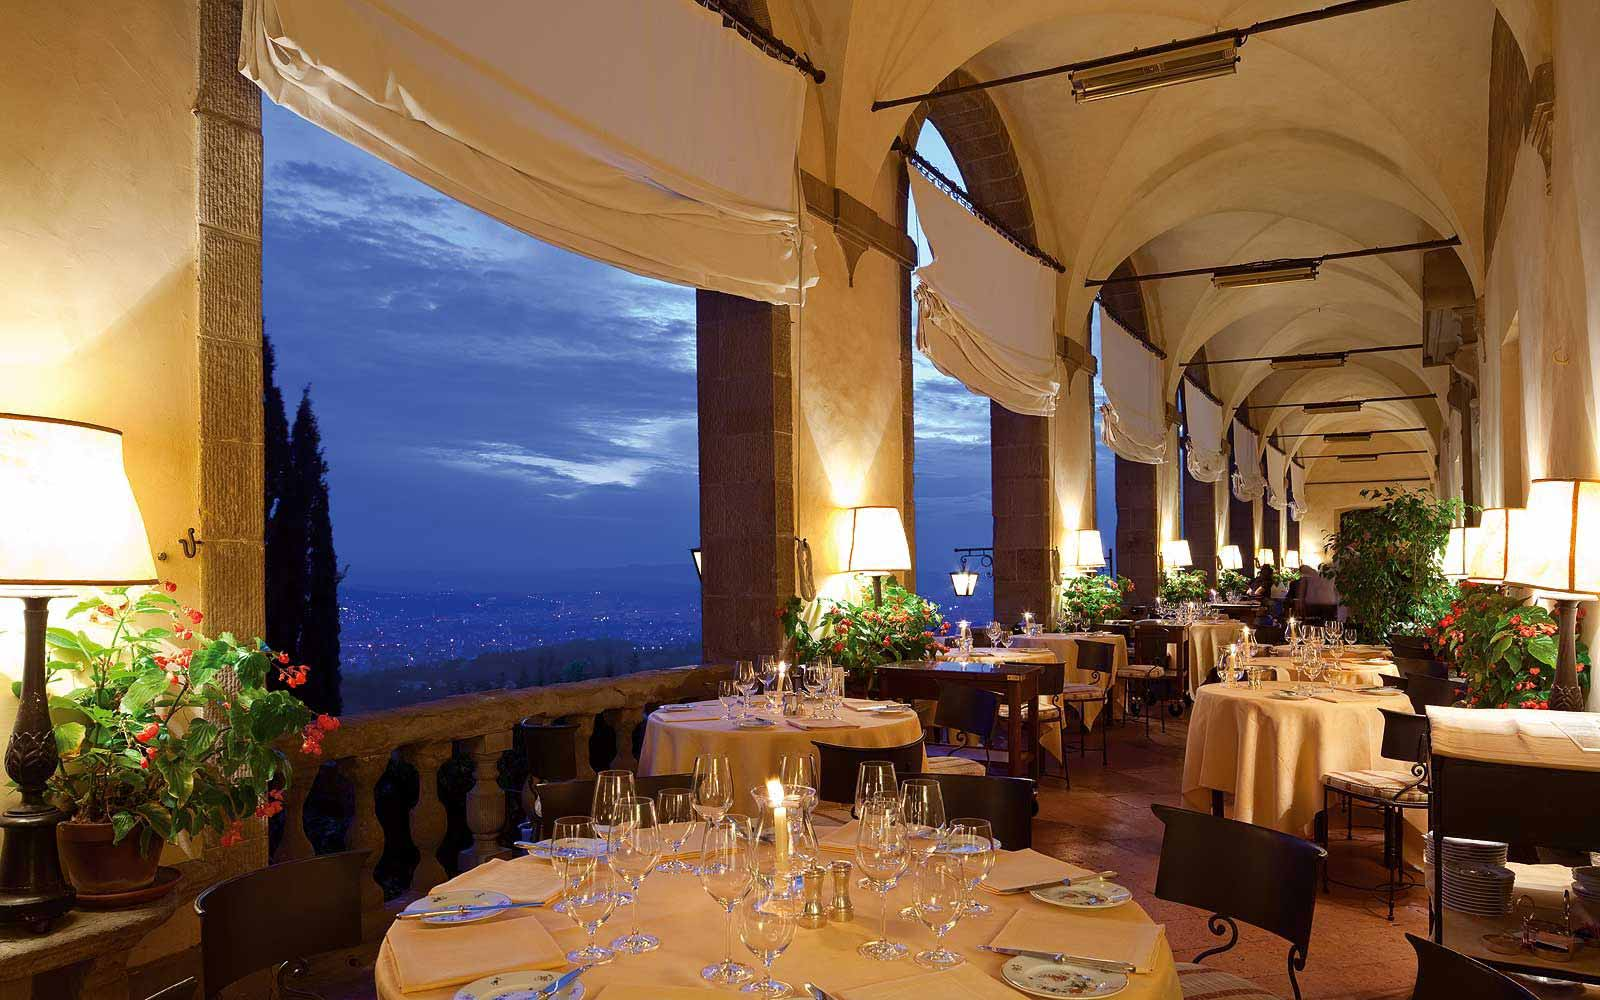 View from the La Loggia Restaurant terrace at Belmond Villa San Michele